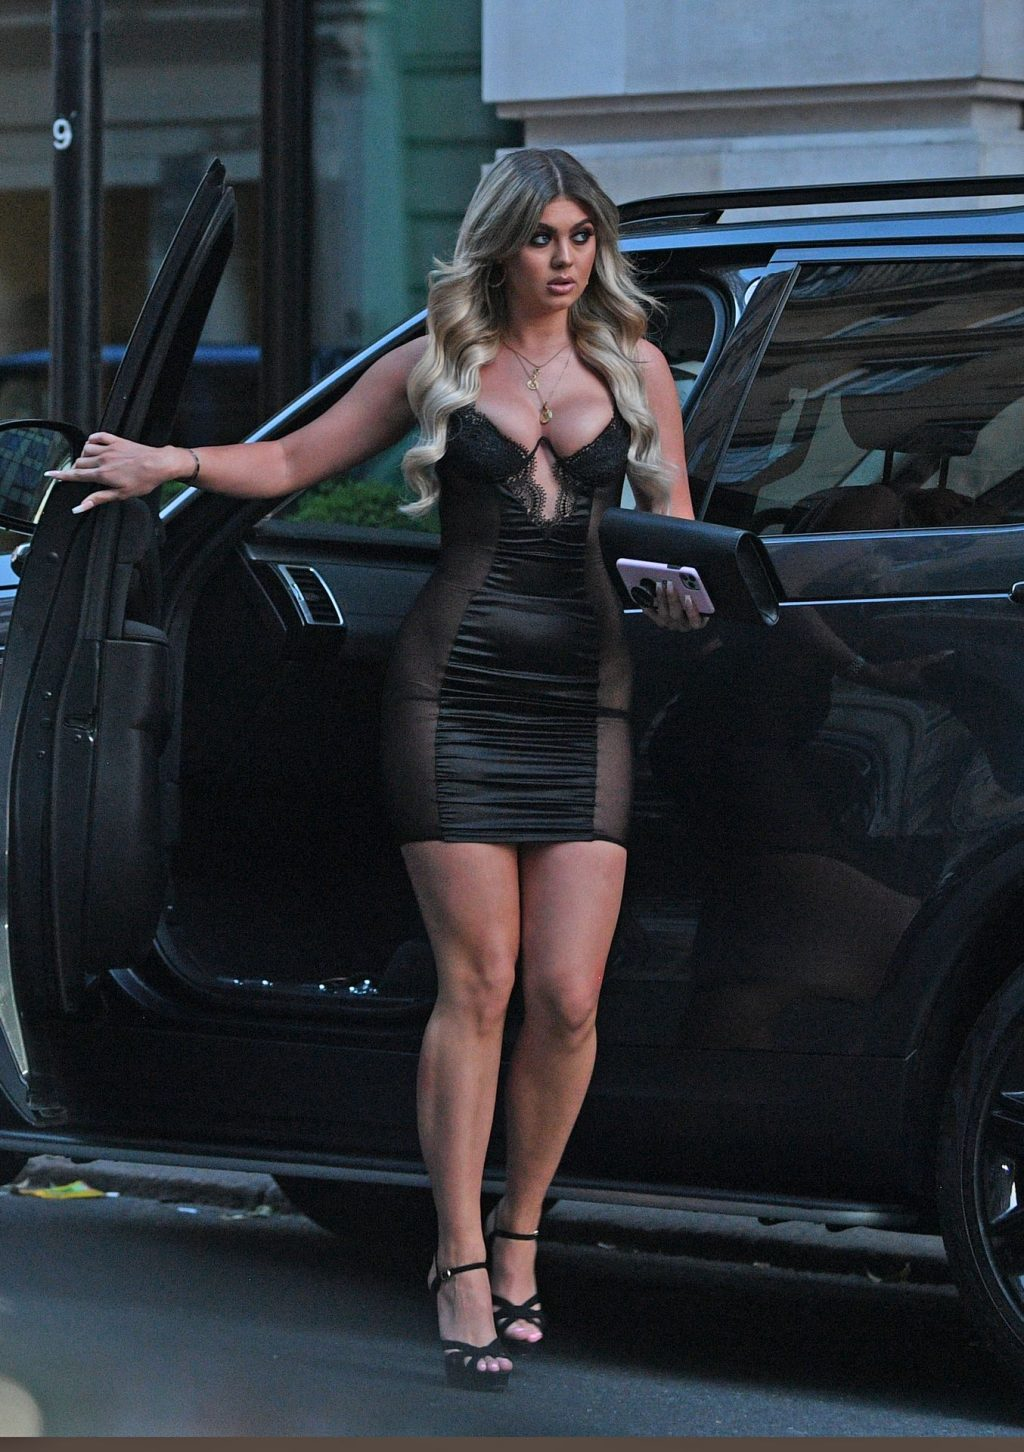 Belle Hassan Shows Off Her Sexy Legs in London (12 Photos)